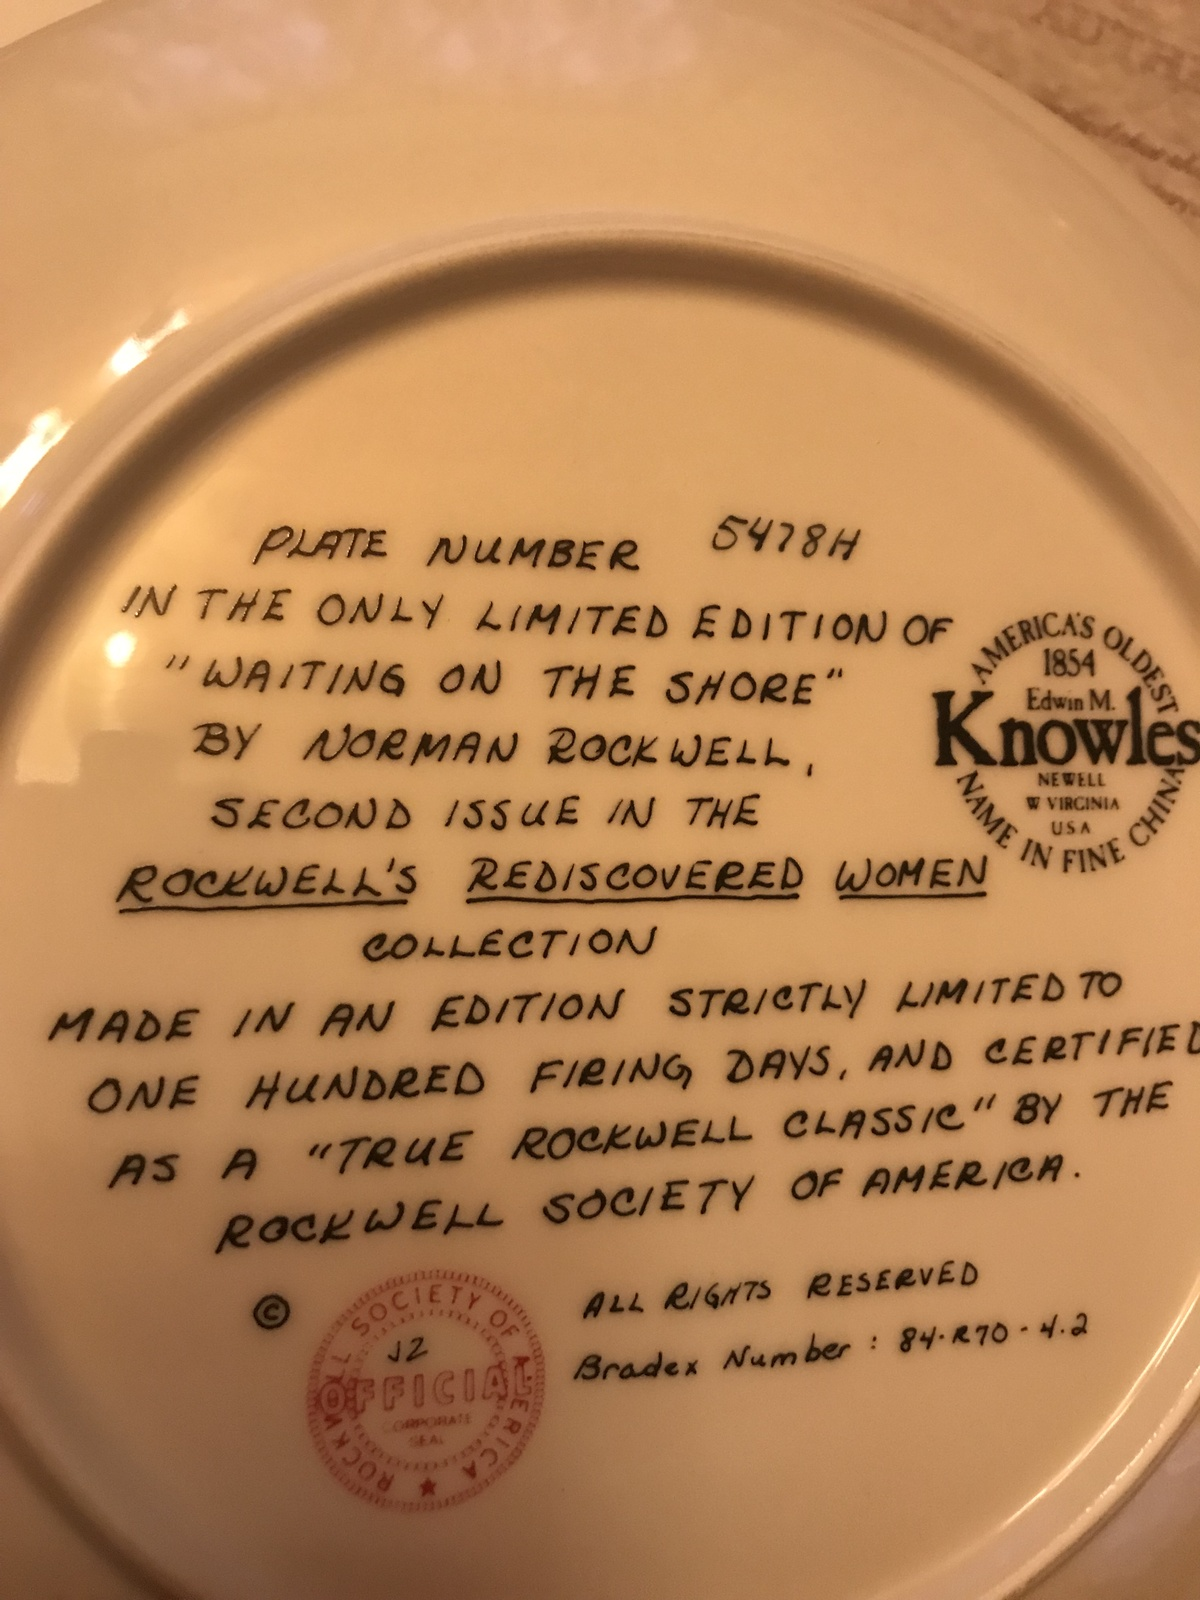 Knowles - Waiting On The Shore - Ltd Ed 1981 - 5478H